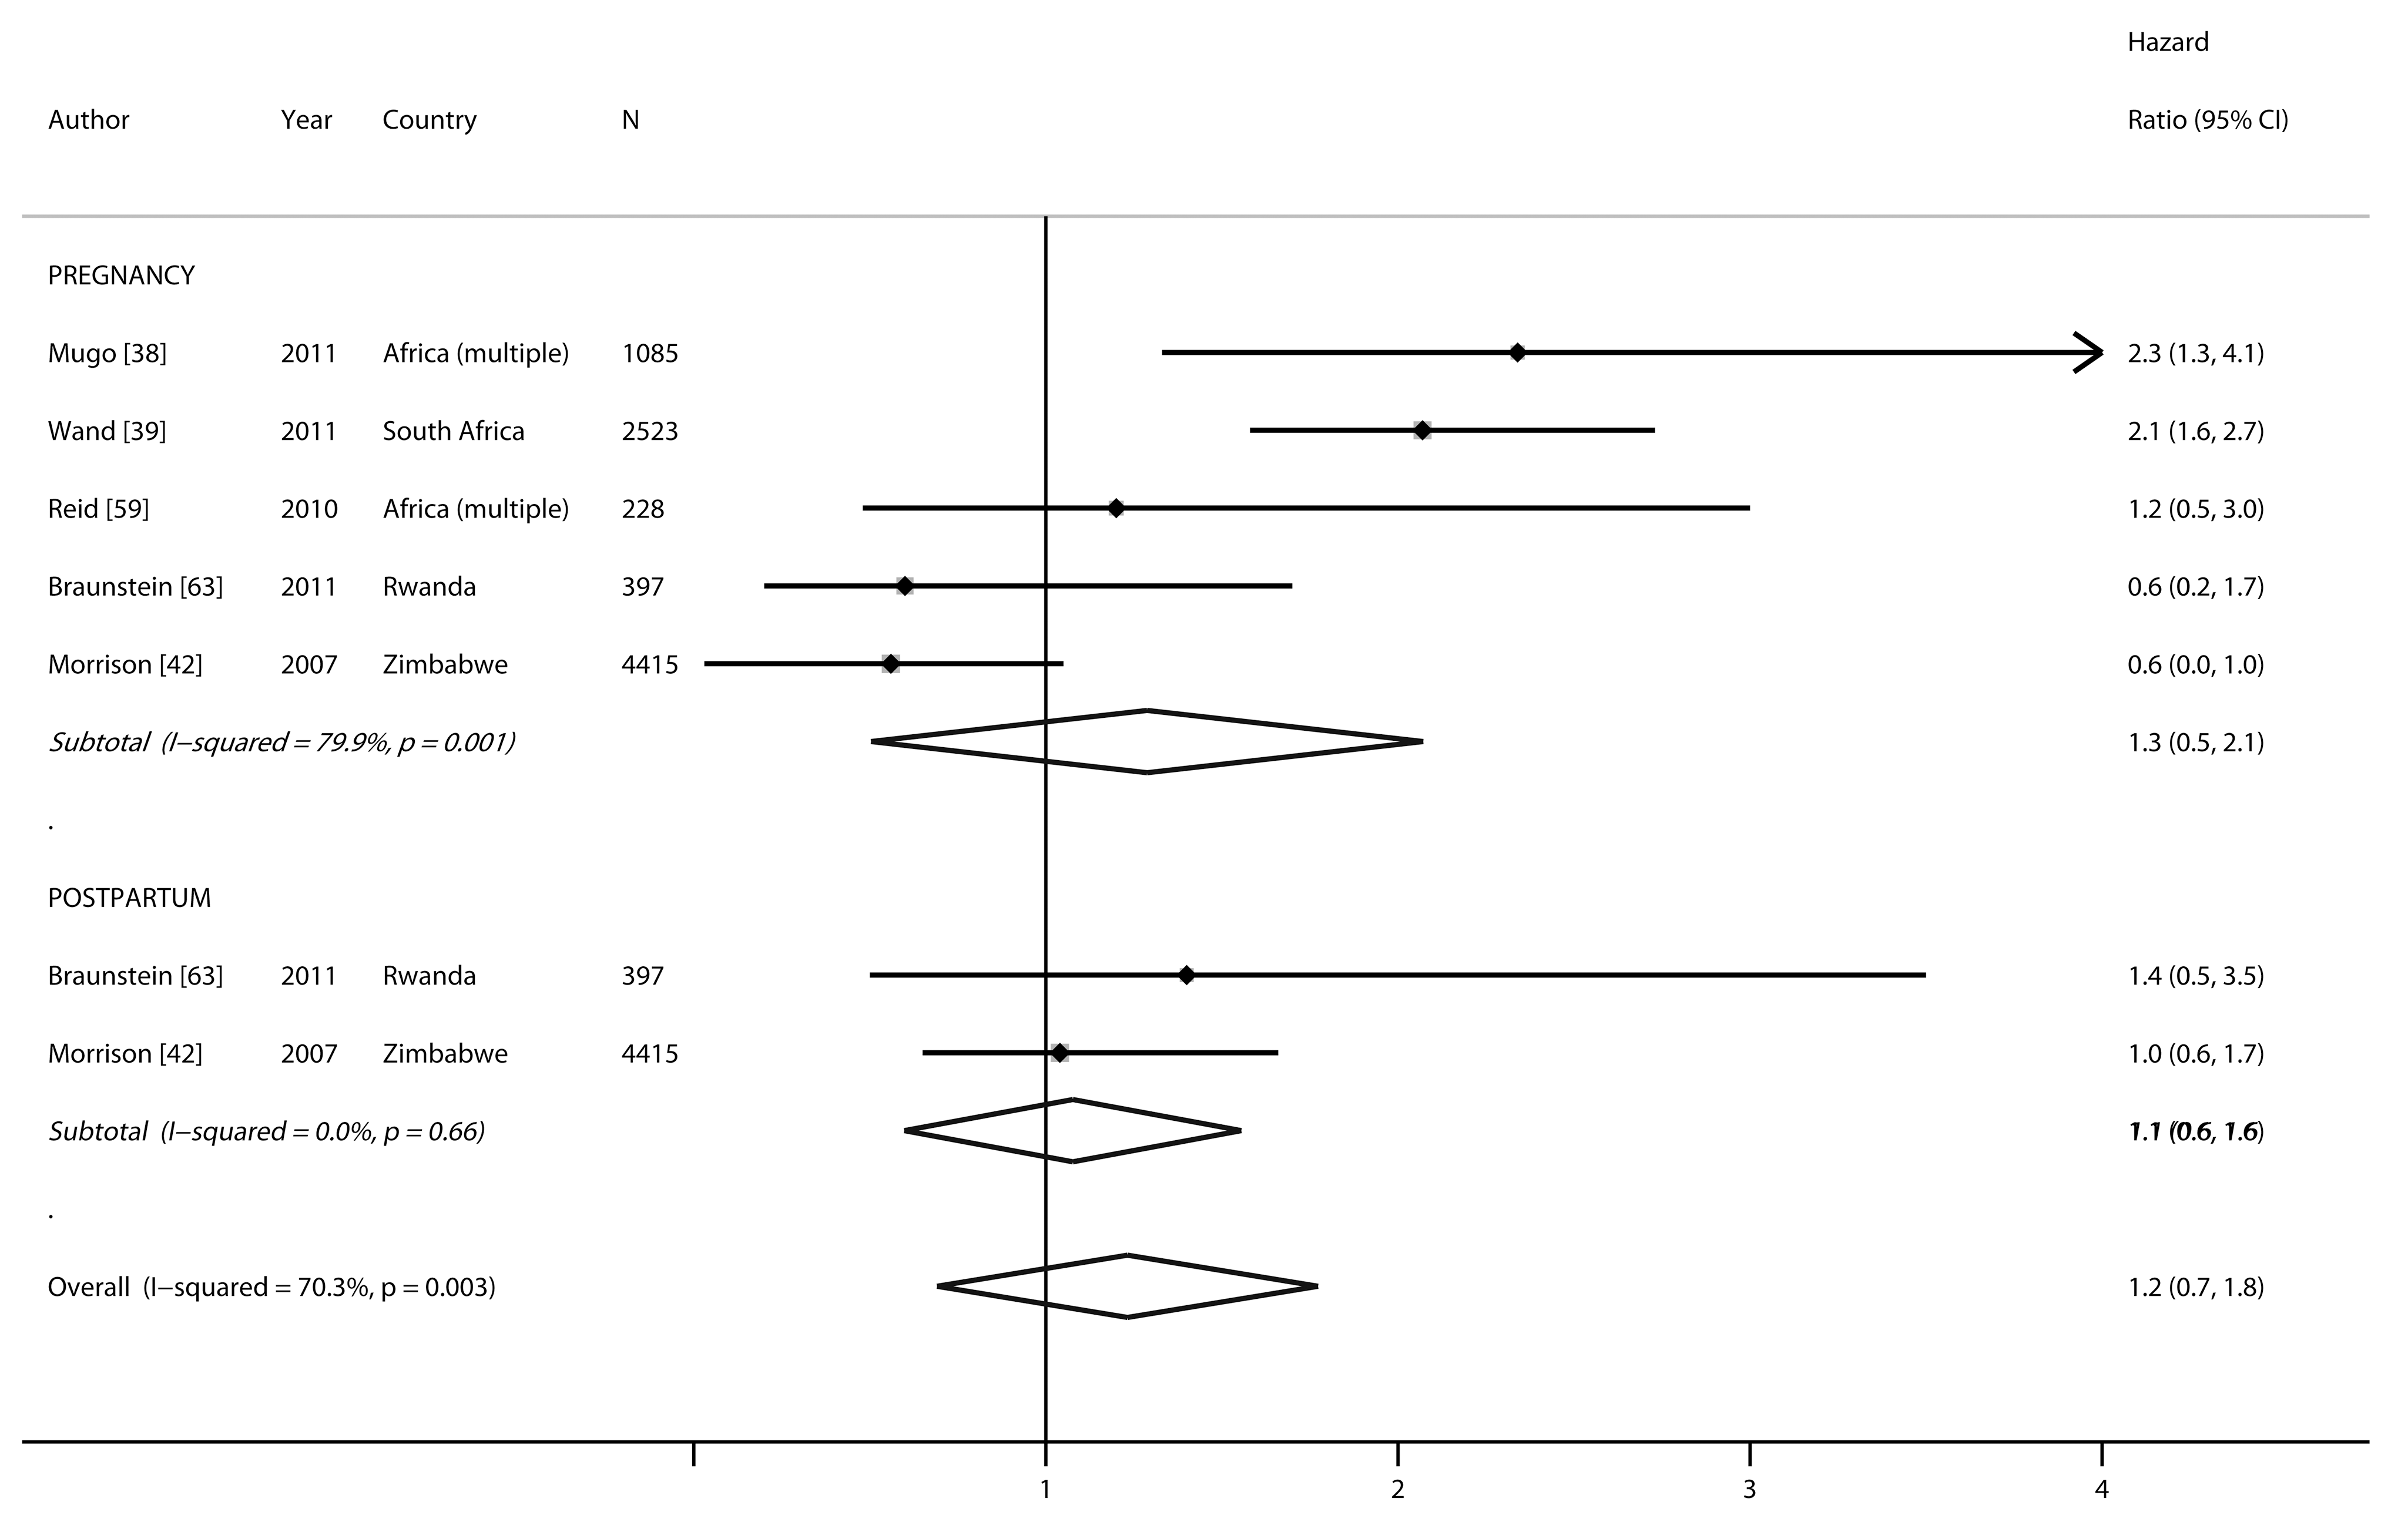 Forest plot of risk of HIV acquisition, by pregnancy and postpartum status.